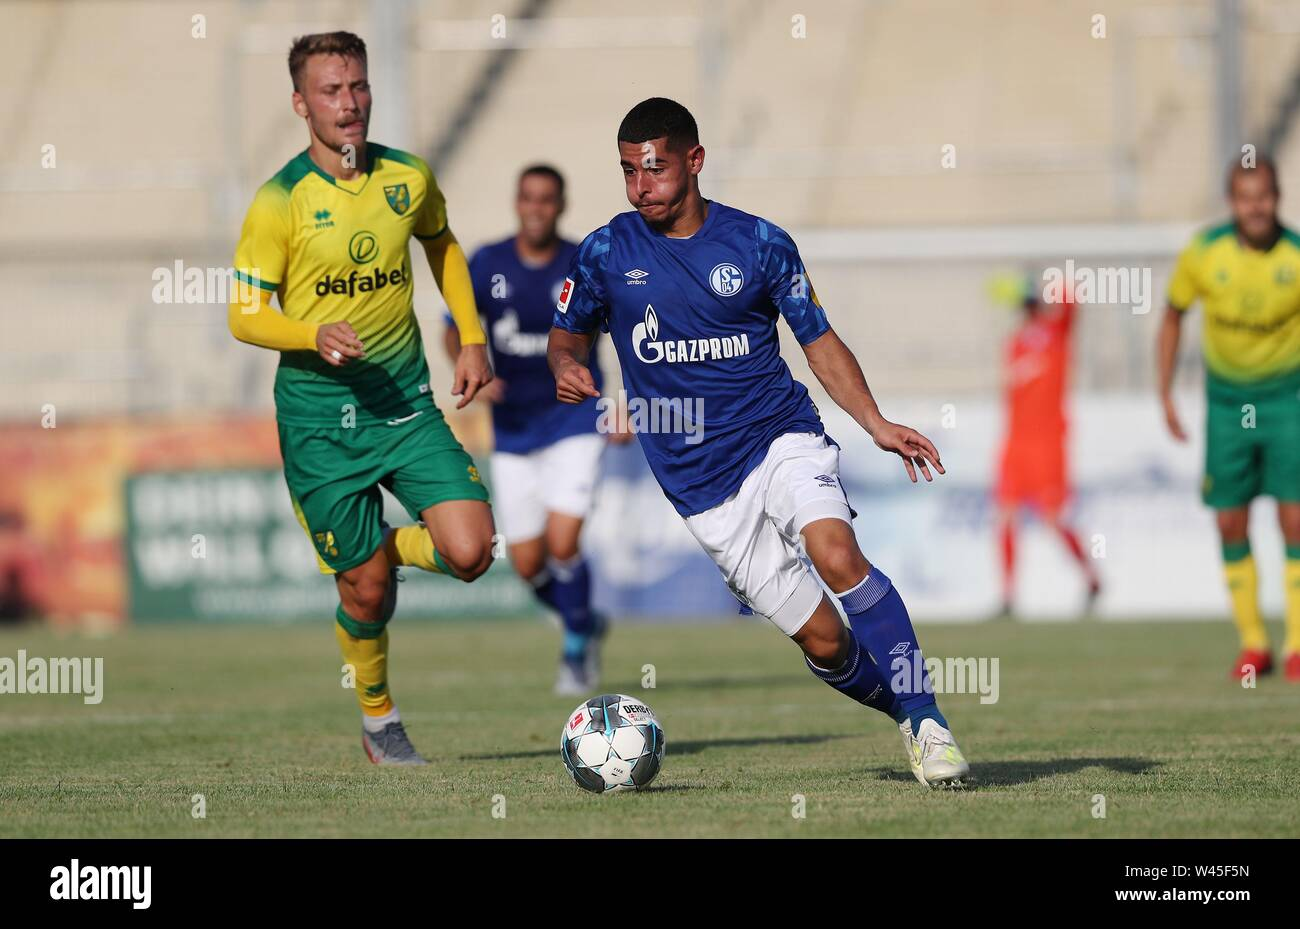 Lotte, Deutschland. 19th July, 2019. firo: 19.07.2019, football, 1.Bundesliga, season 2019/2020, friendly match, FC Schalke 04 - Norwich City Levent MERCAN, Schalke, single action | usage worldwide Credit: dpa/Alamy Live News - Stock Image